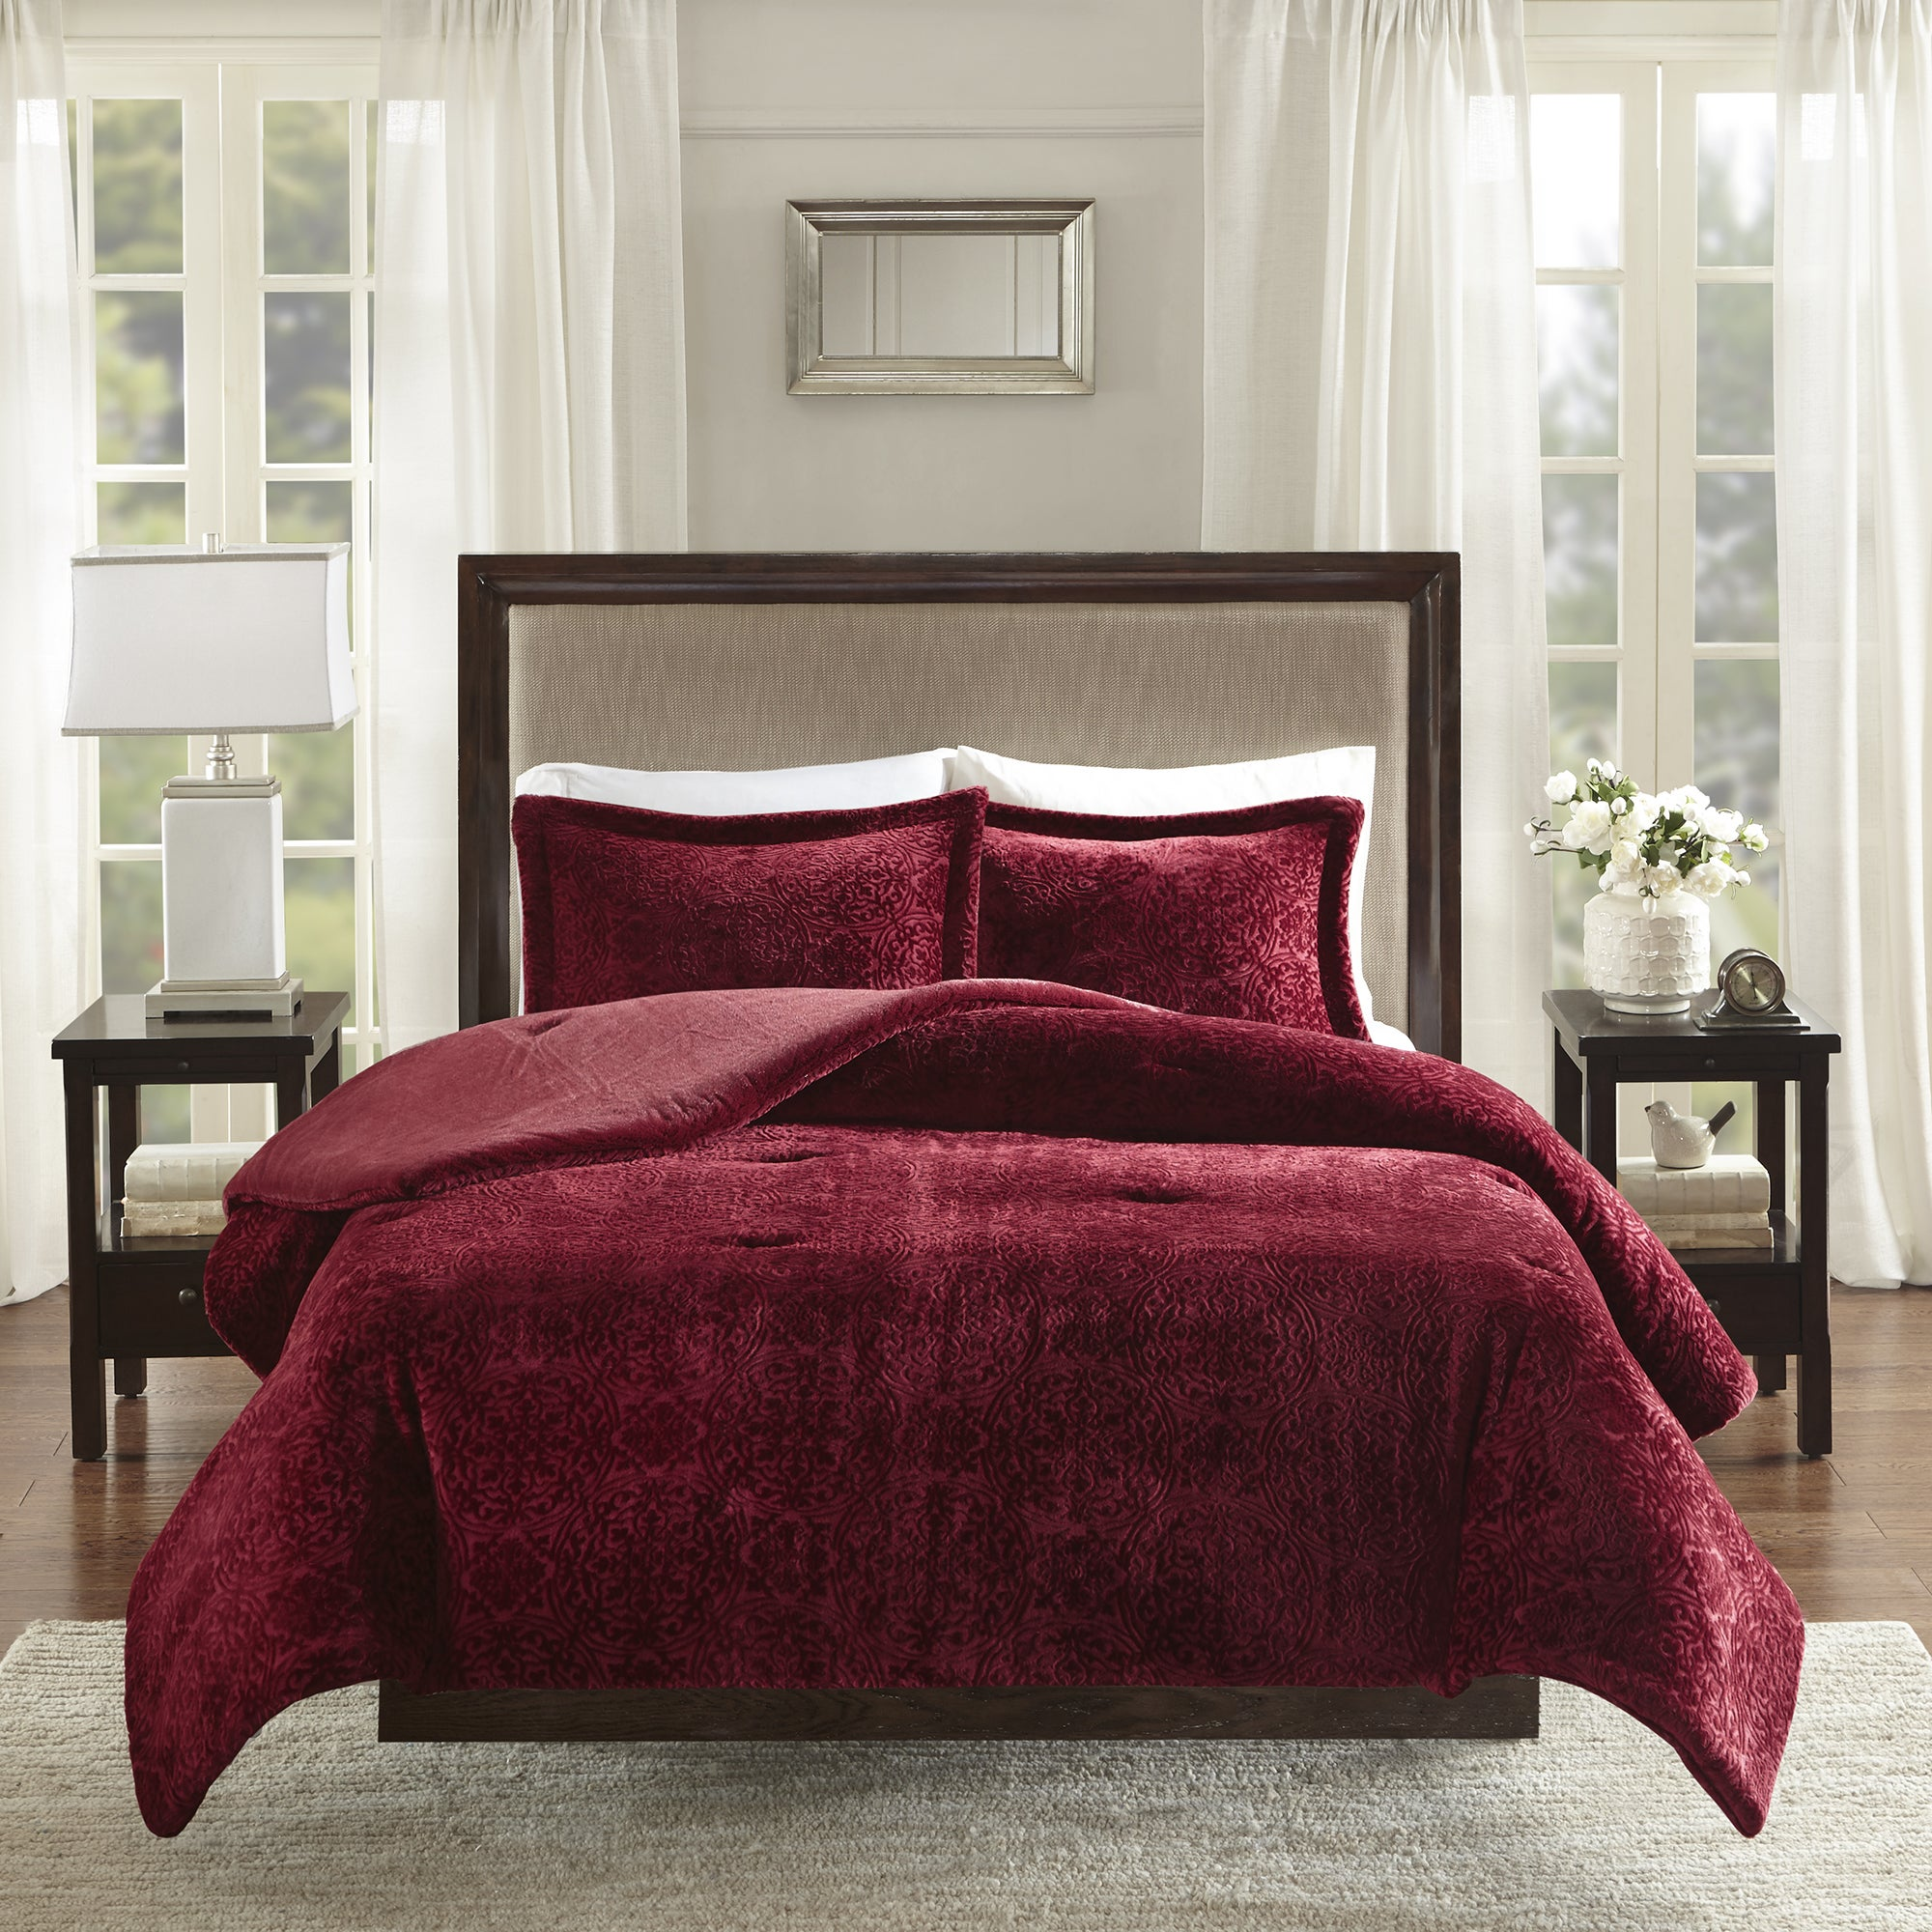 white red medium with beautiful contemporary expansive piece twin polka striped ideas bedding burgundy black ceramic design and cool solid grey dot decorating travertine kitchens furniture geometric brown sheets sets set king reversible comforter bedroom